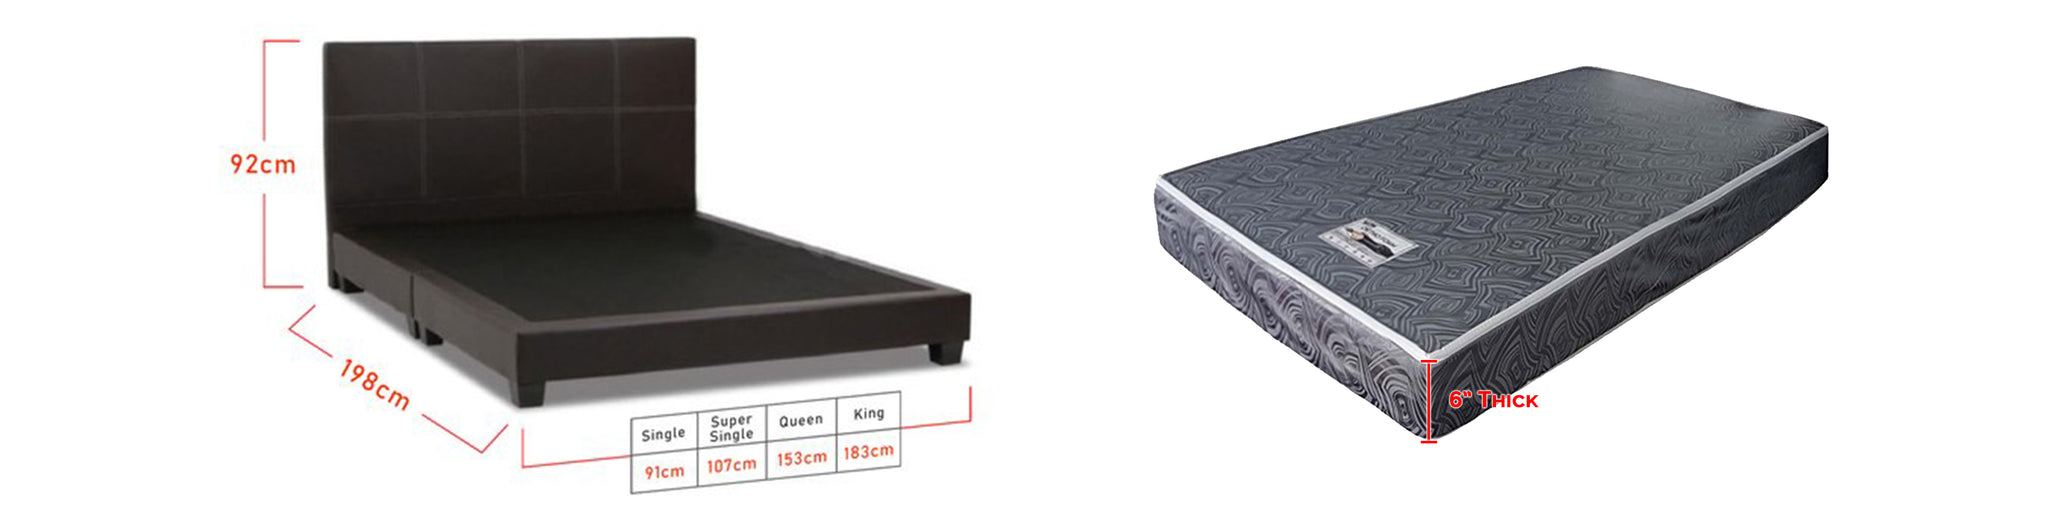 Sabrina Bed Frame + 6 inch HD Foam Mattress In Single, Super Single, Queen, and King Size